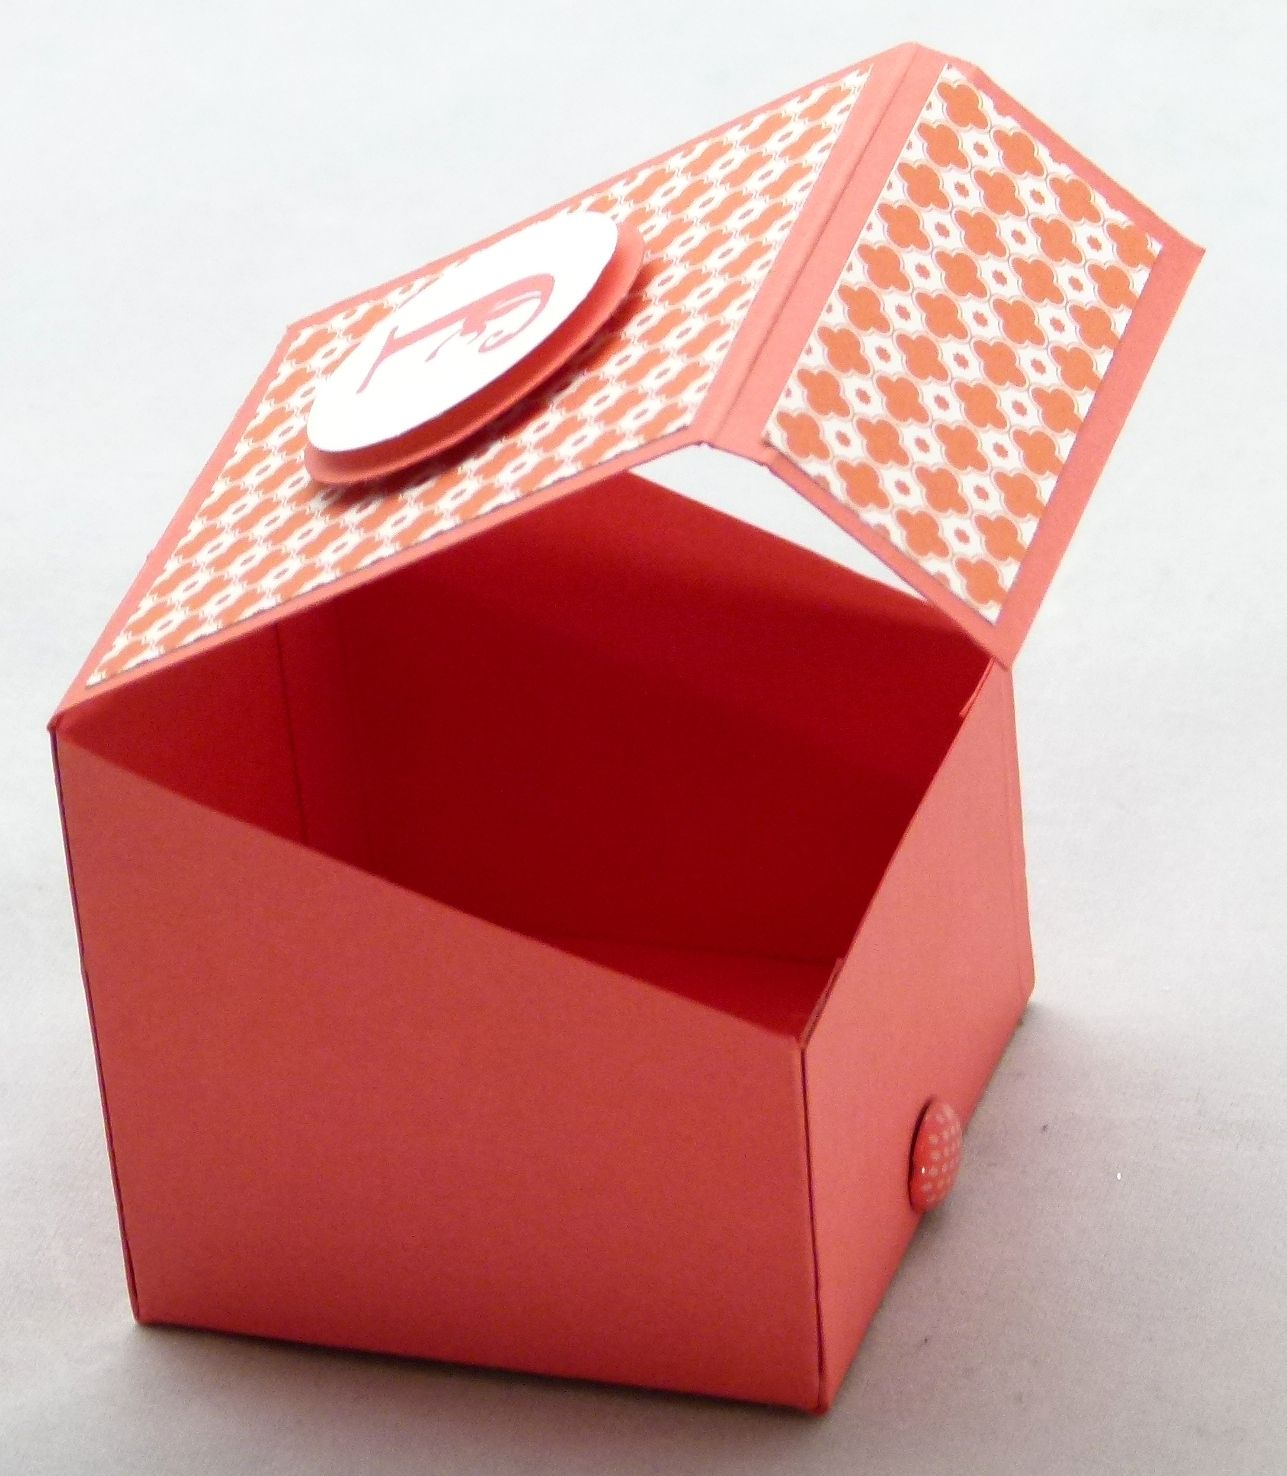 Stampin' Up! UK Boys Gift Treat Box Tutorial VIDEO